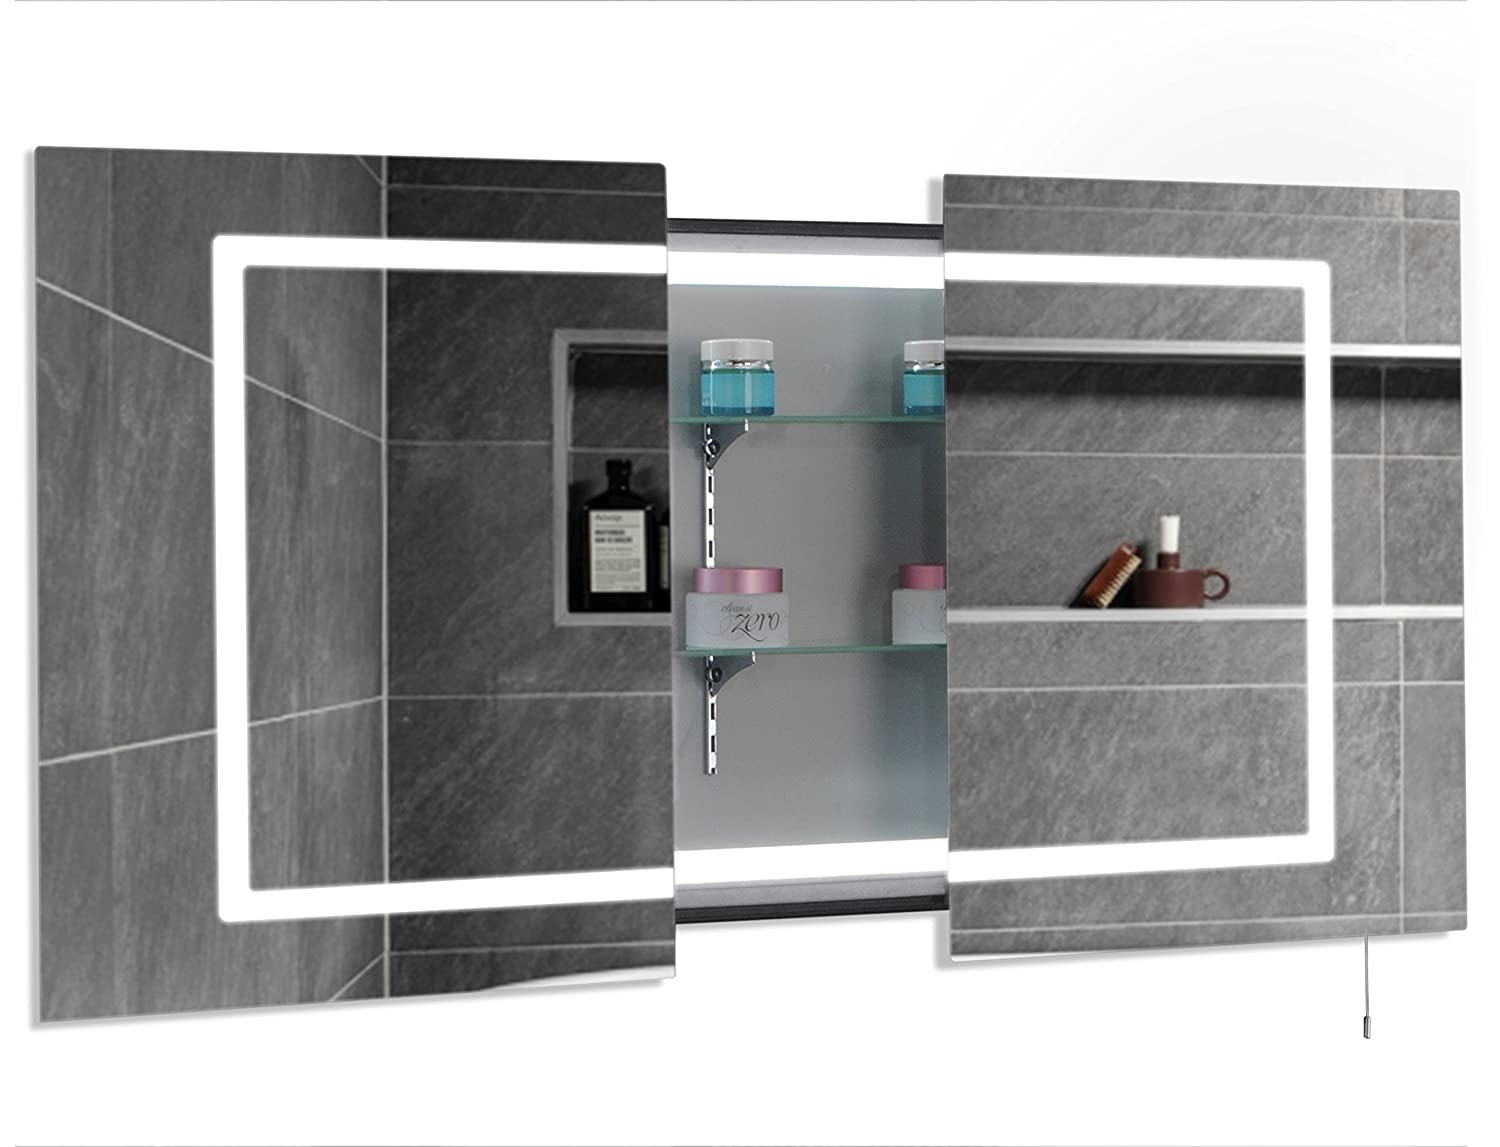 Mirror Cabinet Illuminated Shaving Mirror for Bathroom Sliding Door - Wall Mount - 1 Year Warranty - 900 x 600mm Hapilife